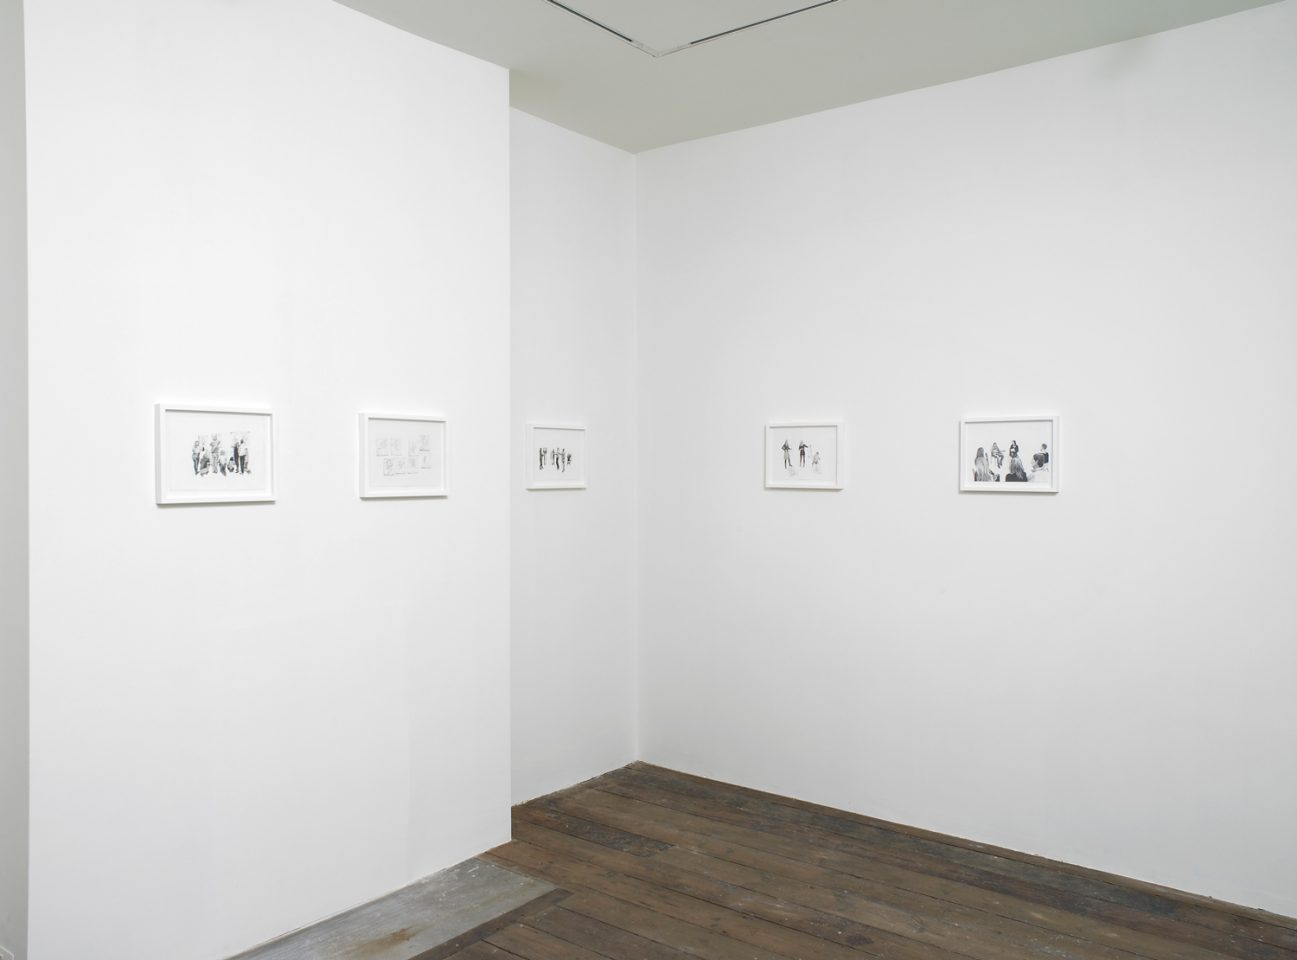 Installation view of Edward Thomasson's 2012 exhibition Inside in the First Floor Galleries. Photo: Andy Keate